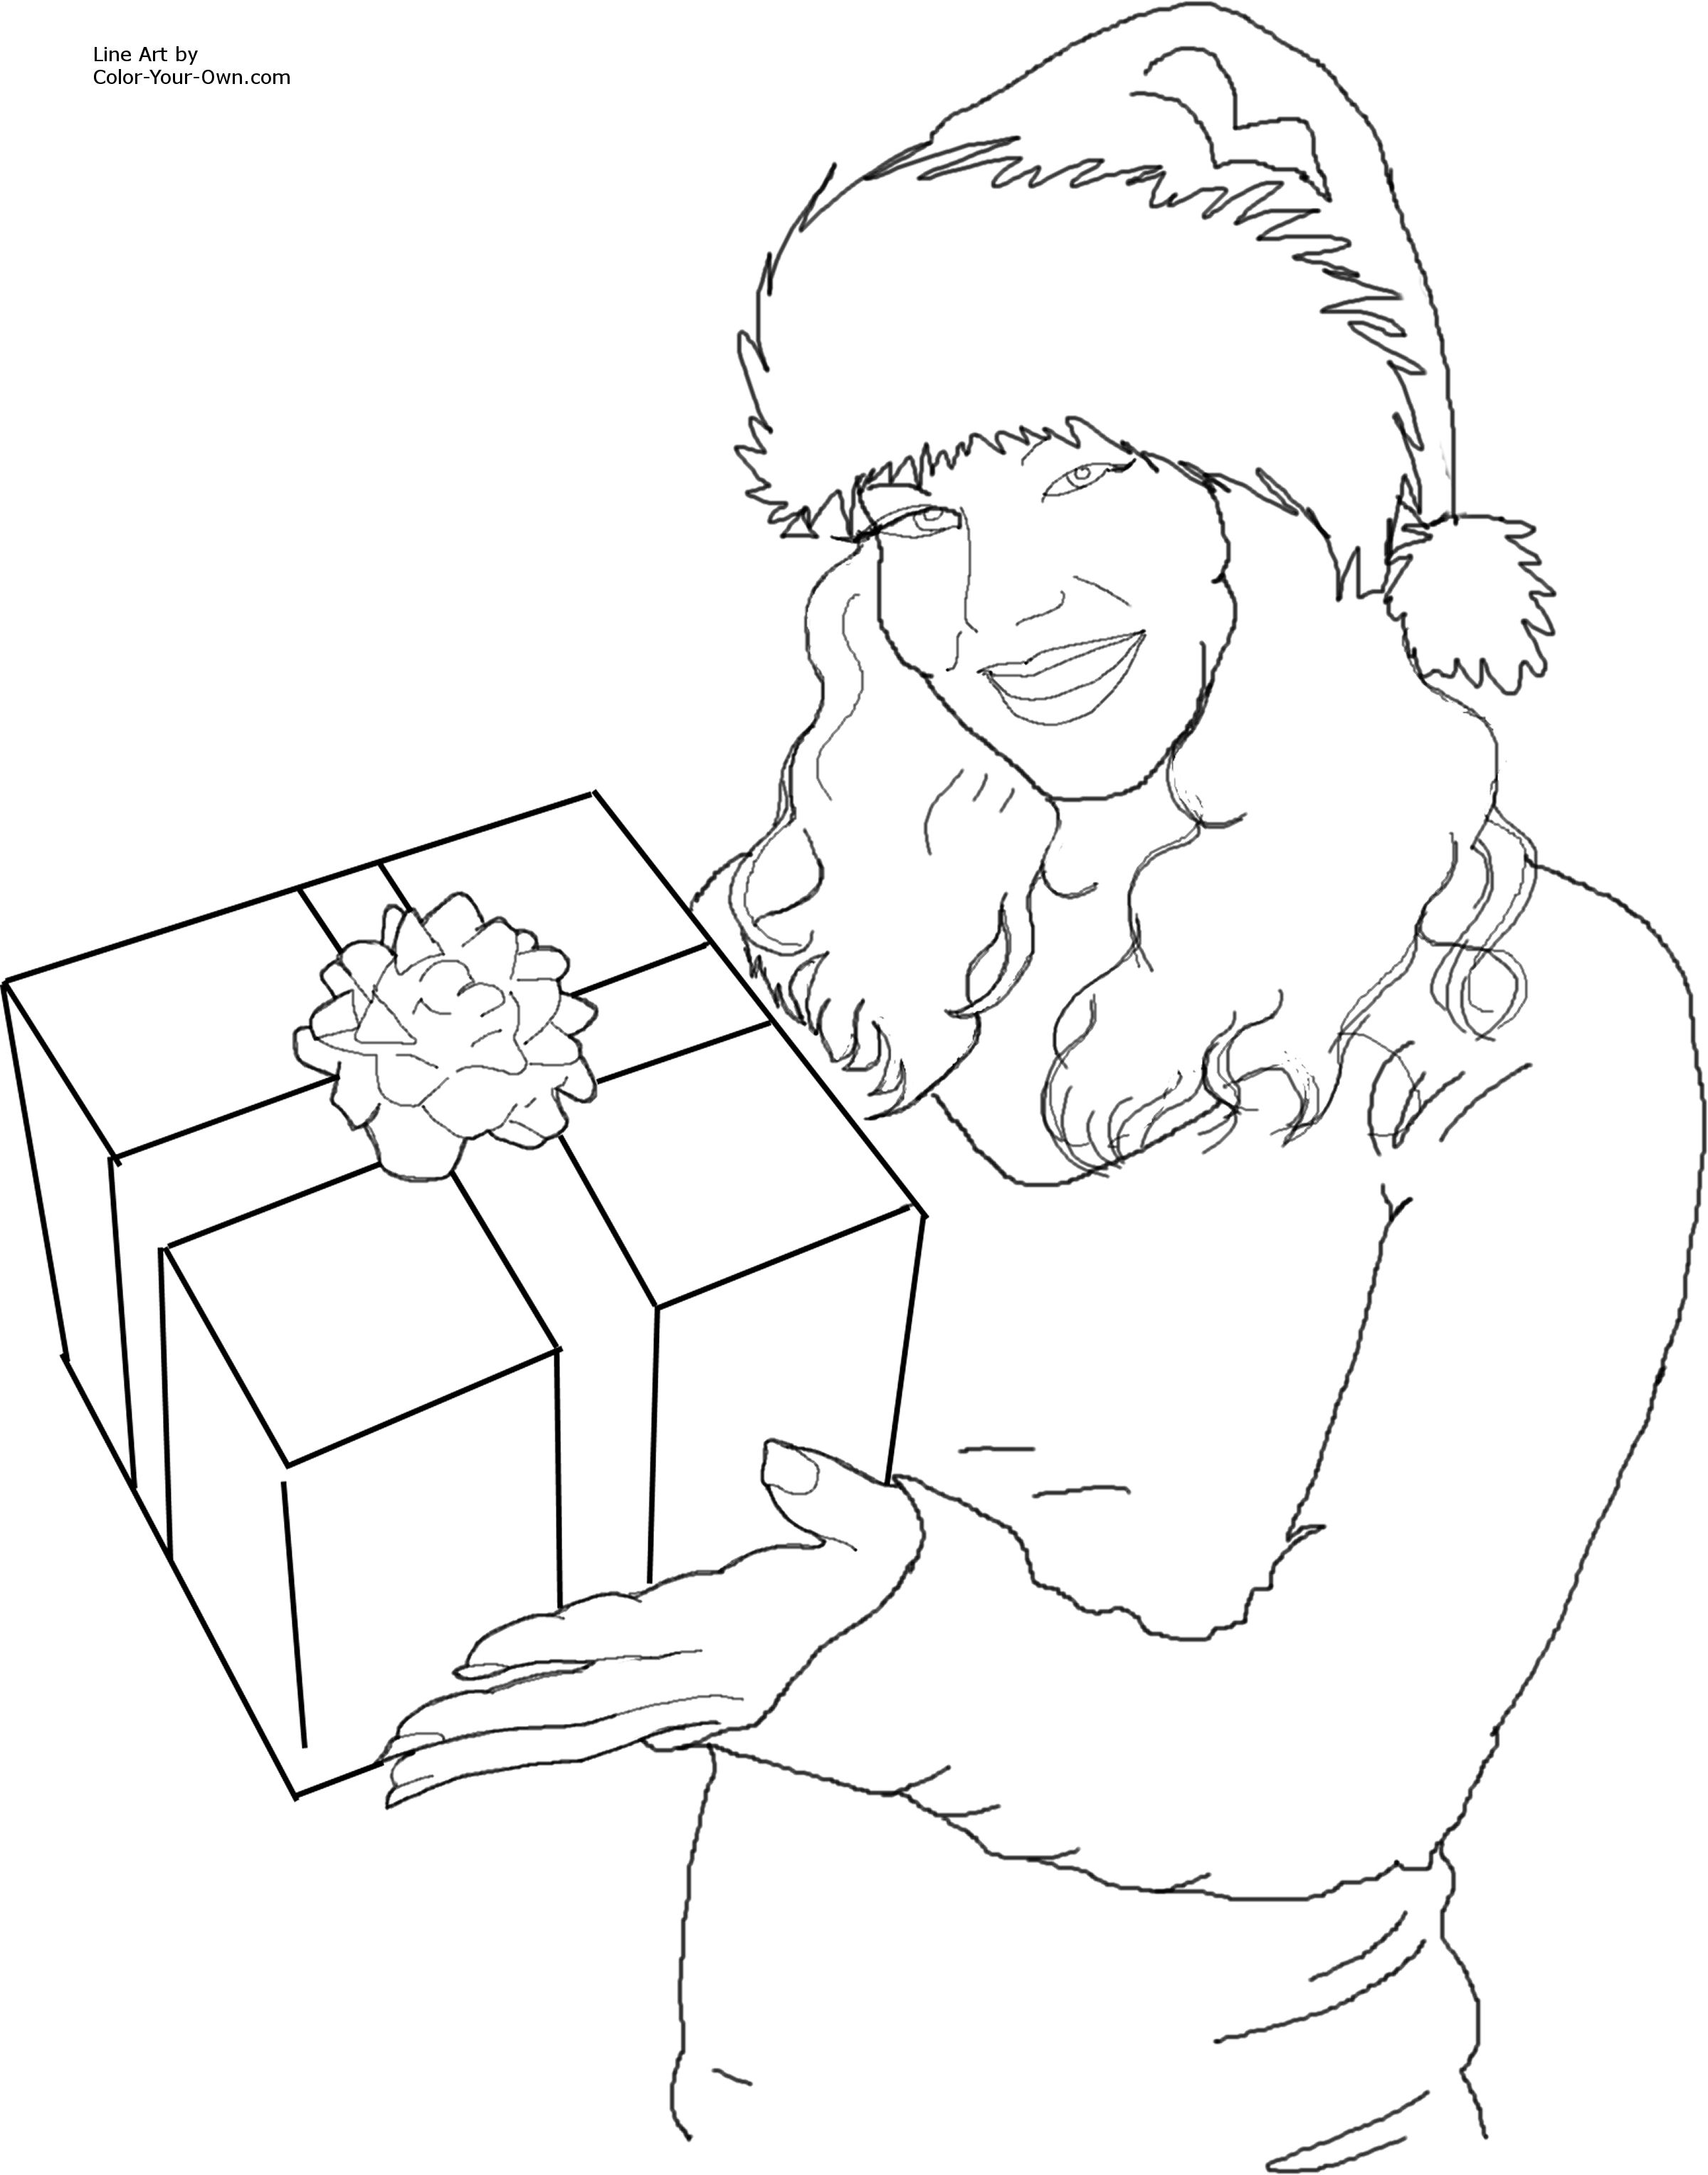 christmas santa s helper with a gift coloring page John Deere Ignition Wiring 1010 click here for the free printable coloring page for 8 5 by 11 inch paper then click print on your browser